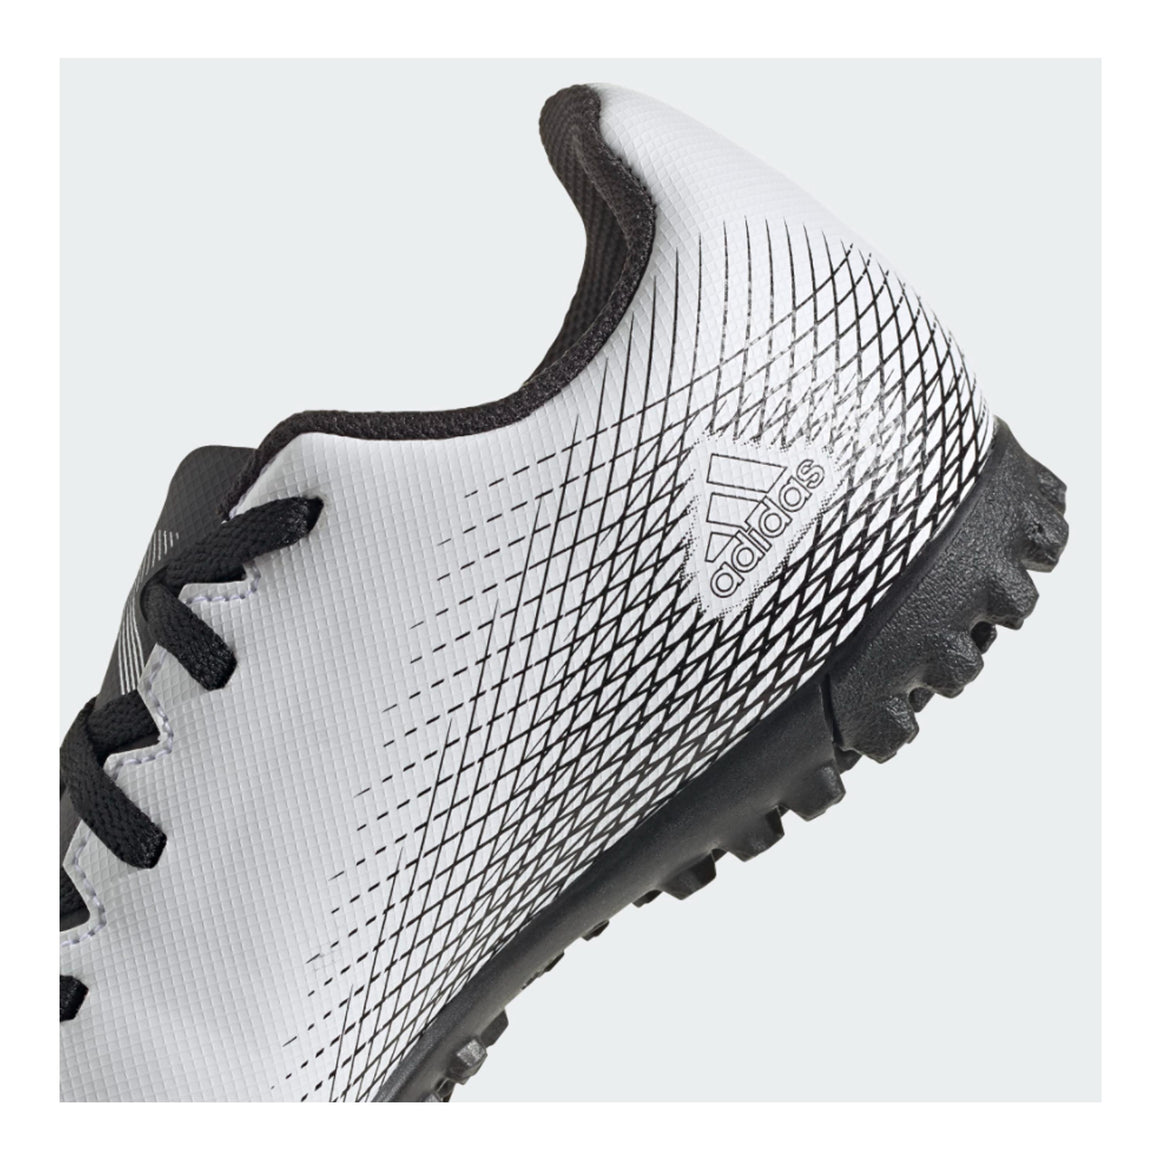 X Ghosted.4 Turf Boots for Kids in White